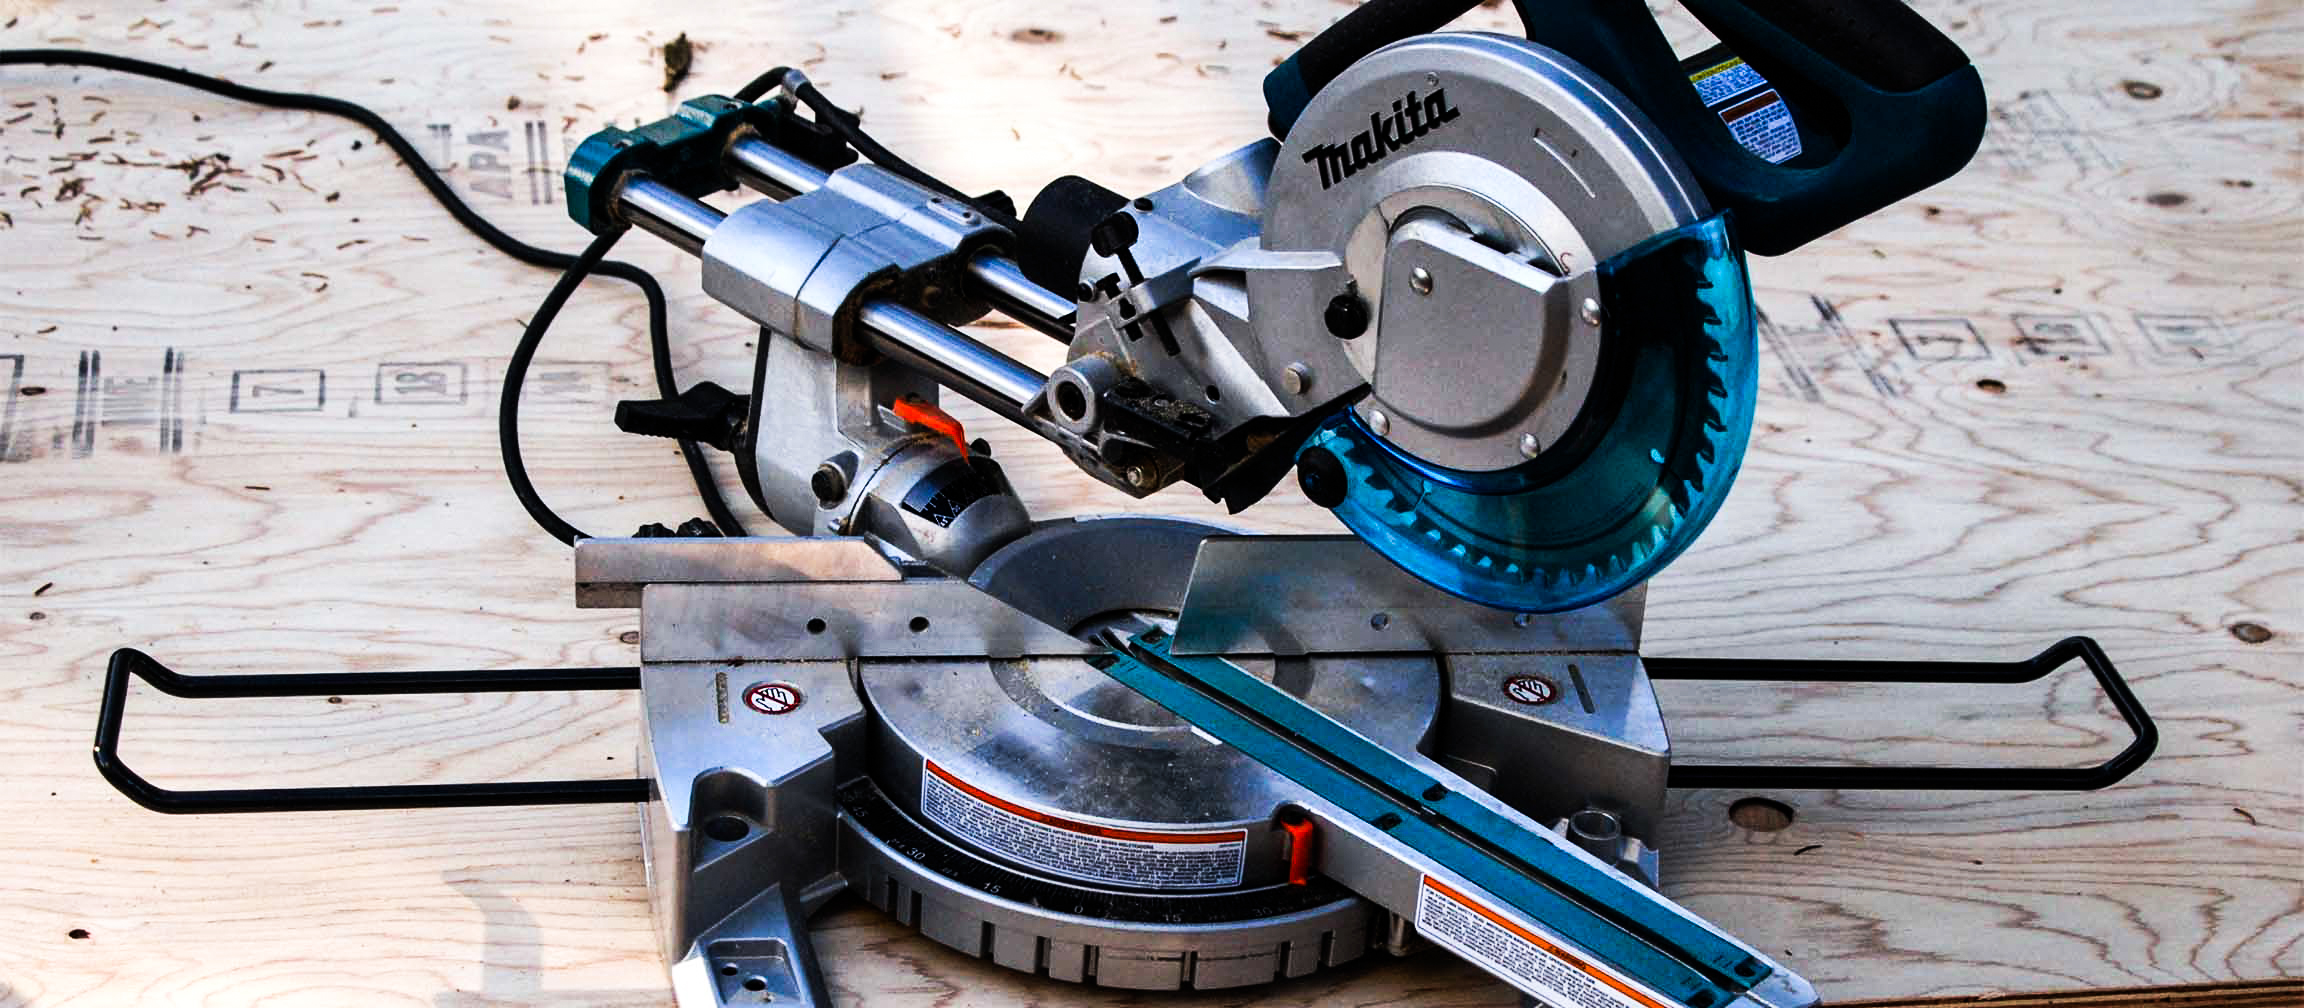 DIY Power  Tools - Makita Mitre Saw